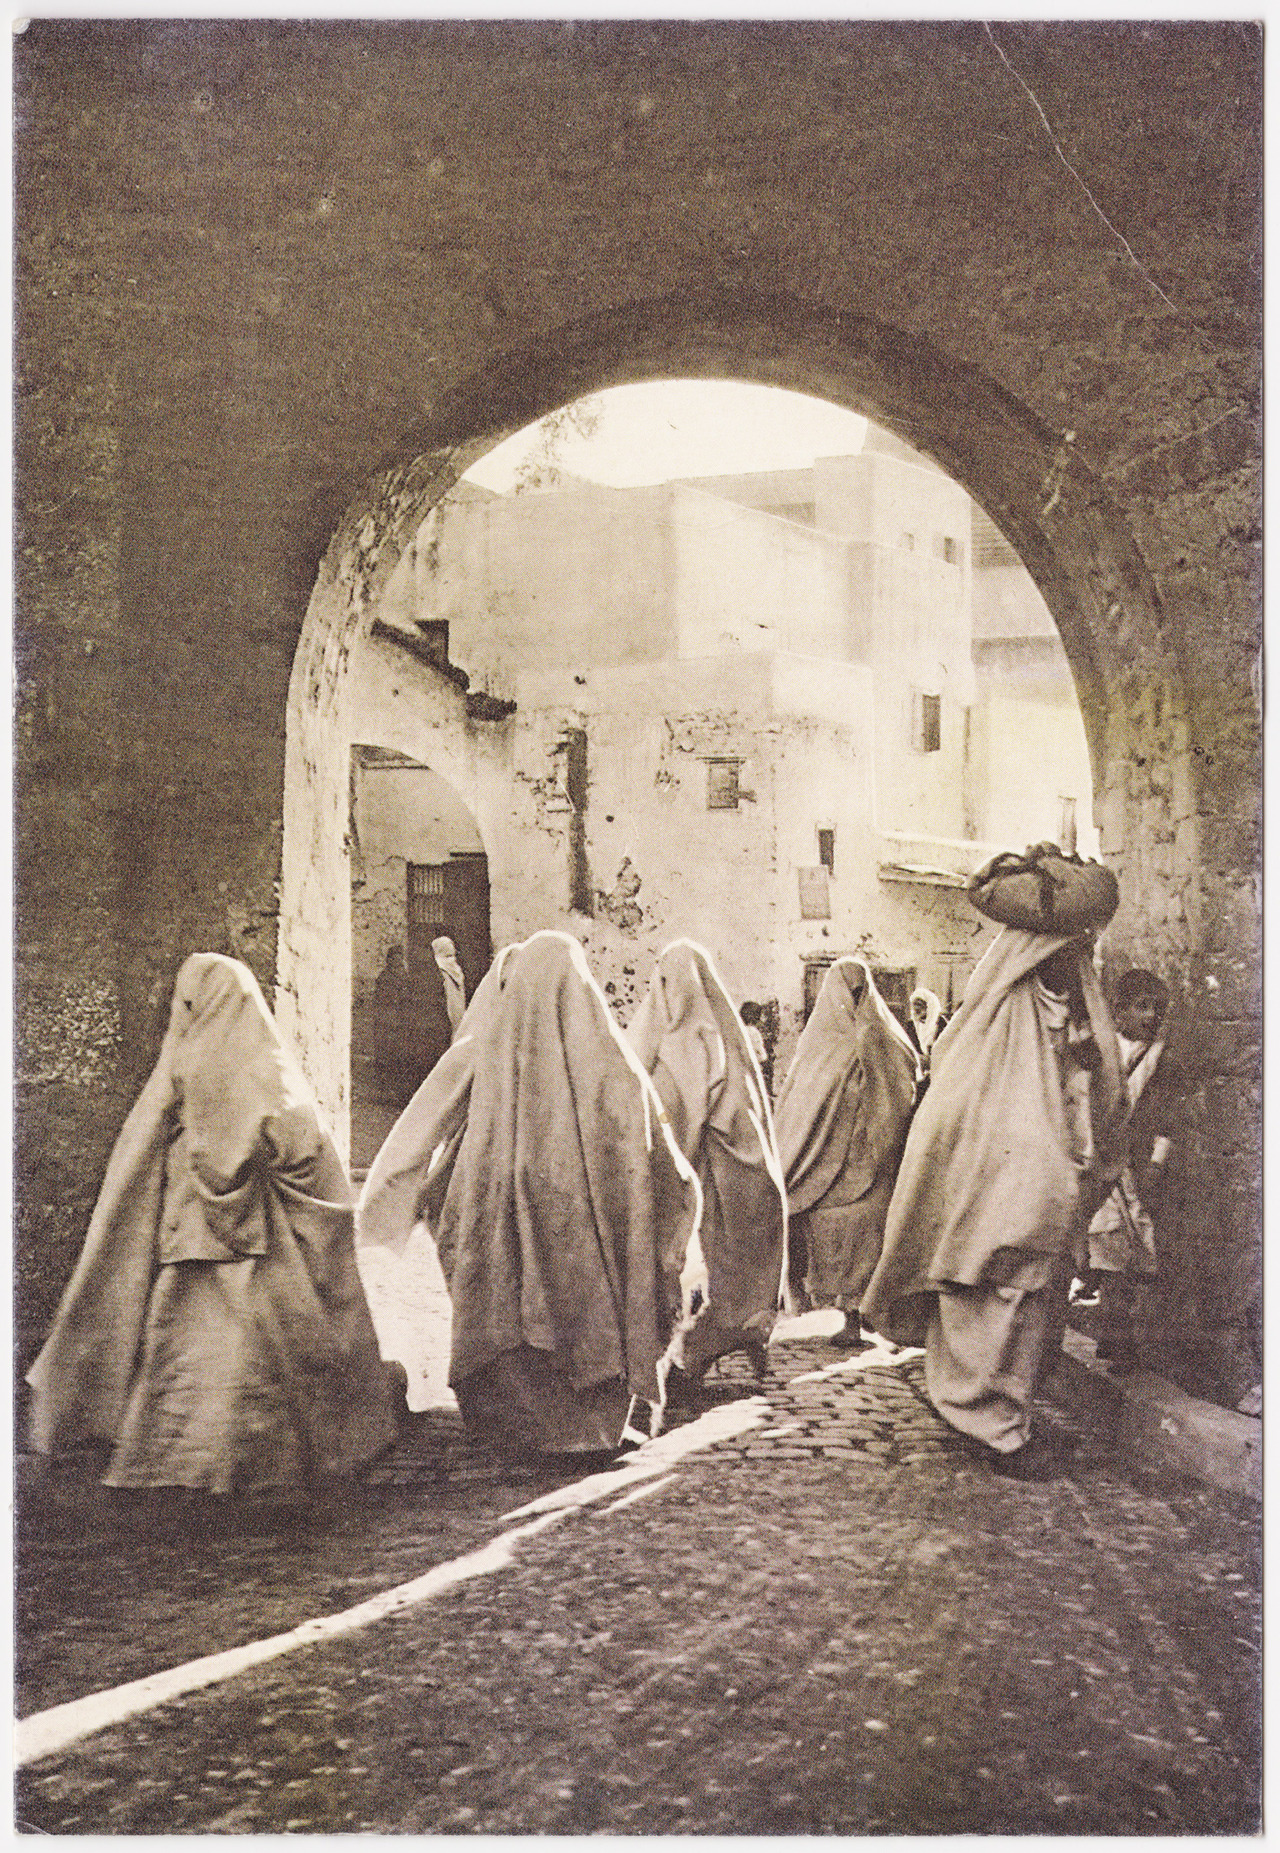 Moroccan women in traditional attire, Casablanca 1920. Photo by Flandrin - '  Gràcieux fantômes  '